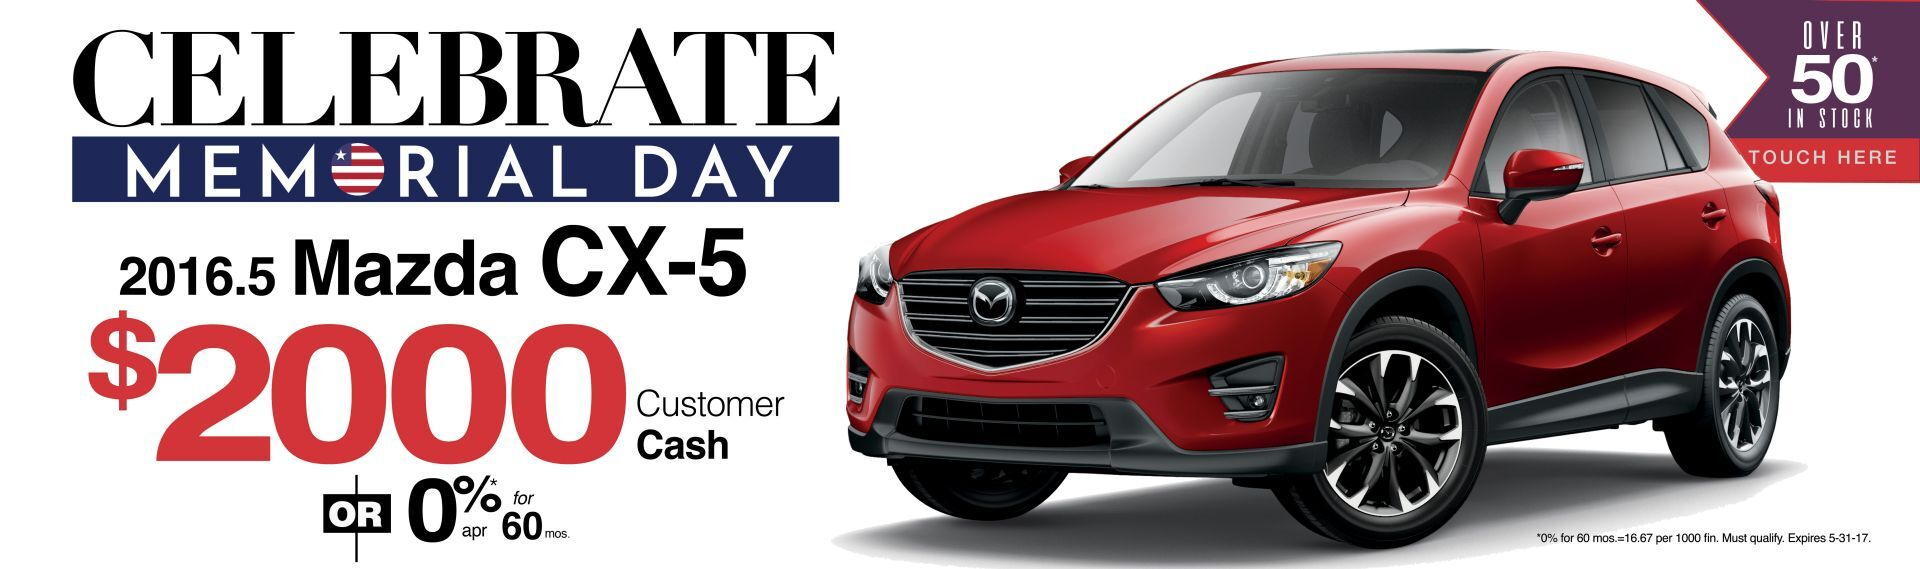 Save $2000 On a 2016.5 Mazda CX-5